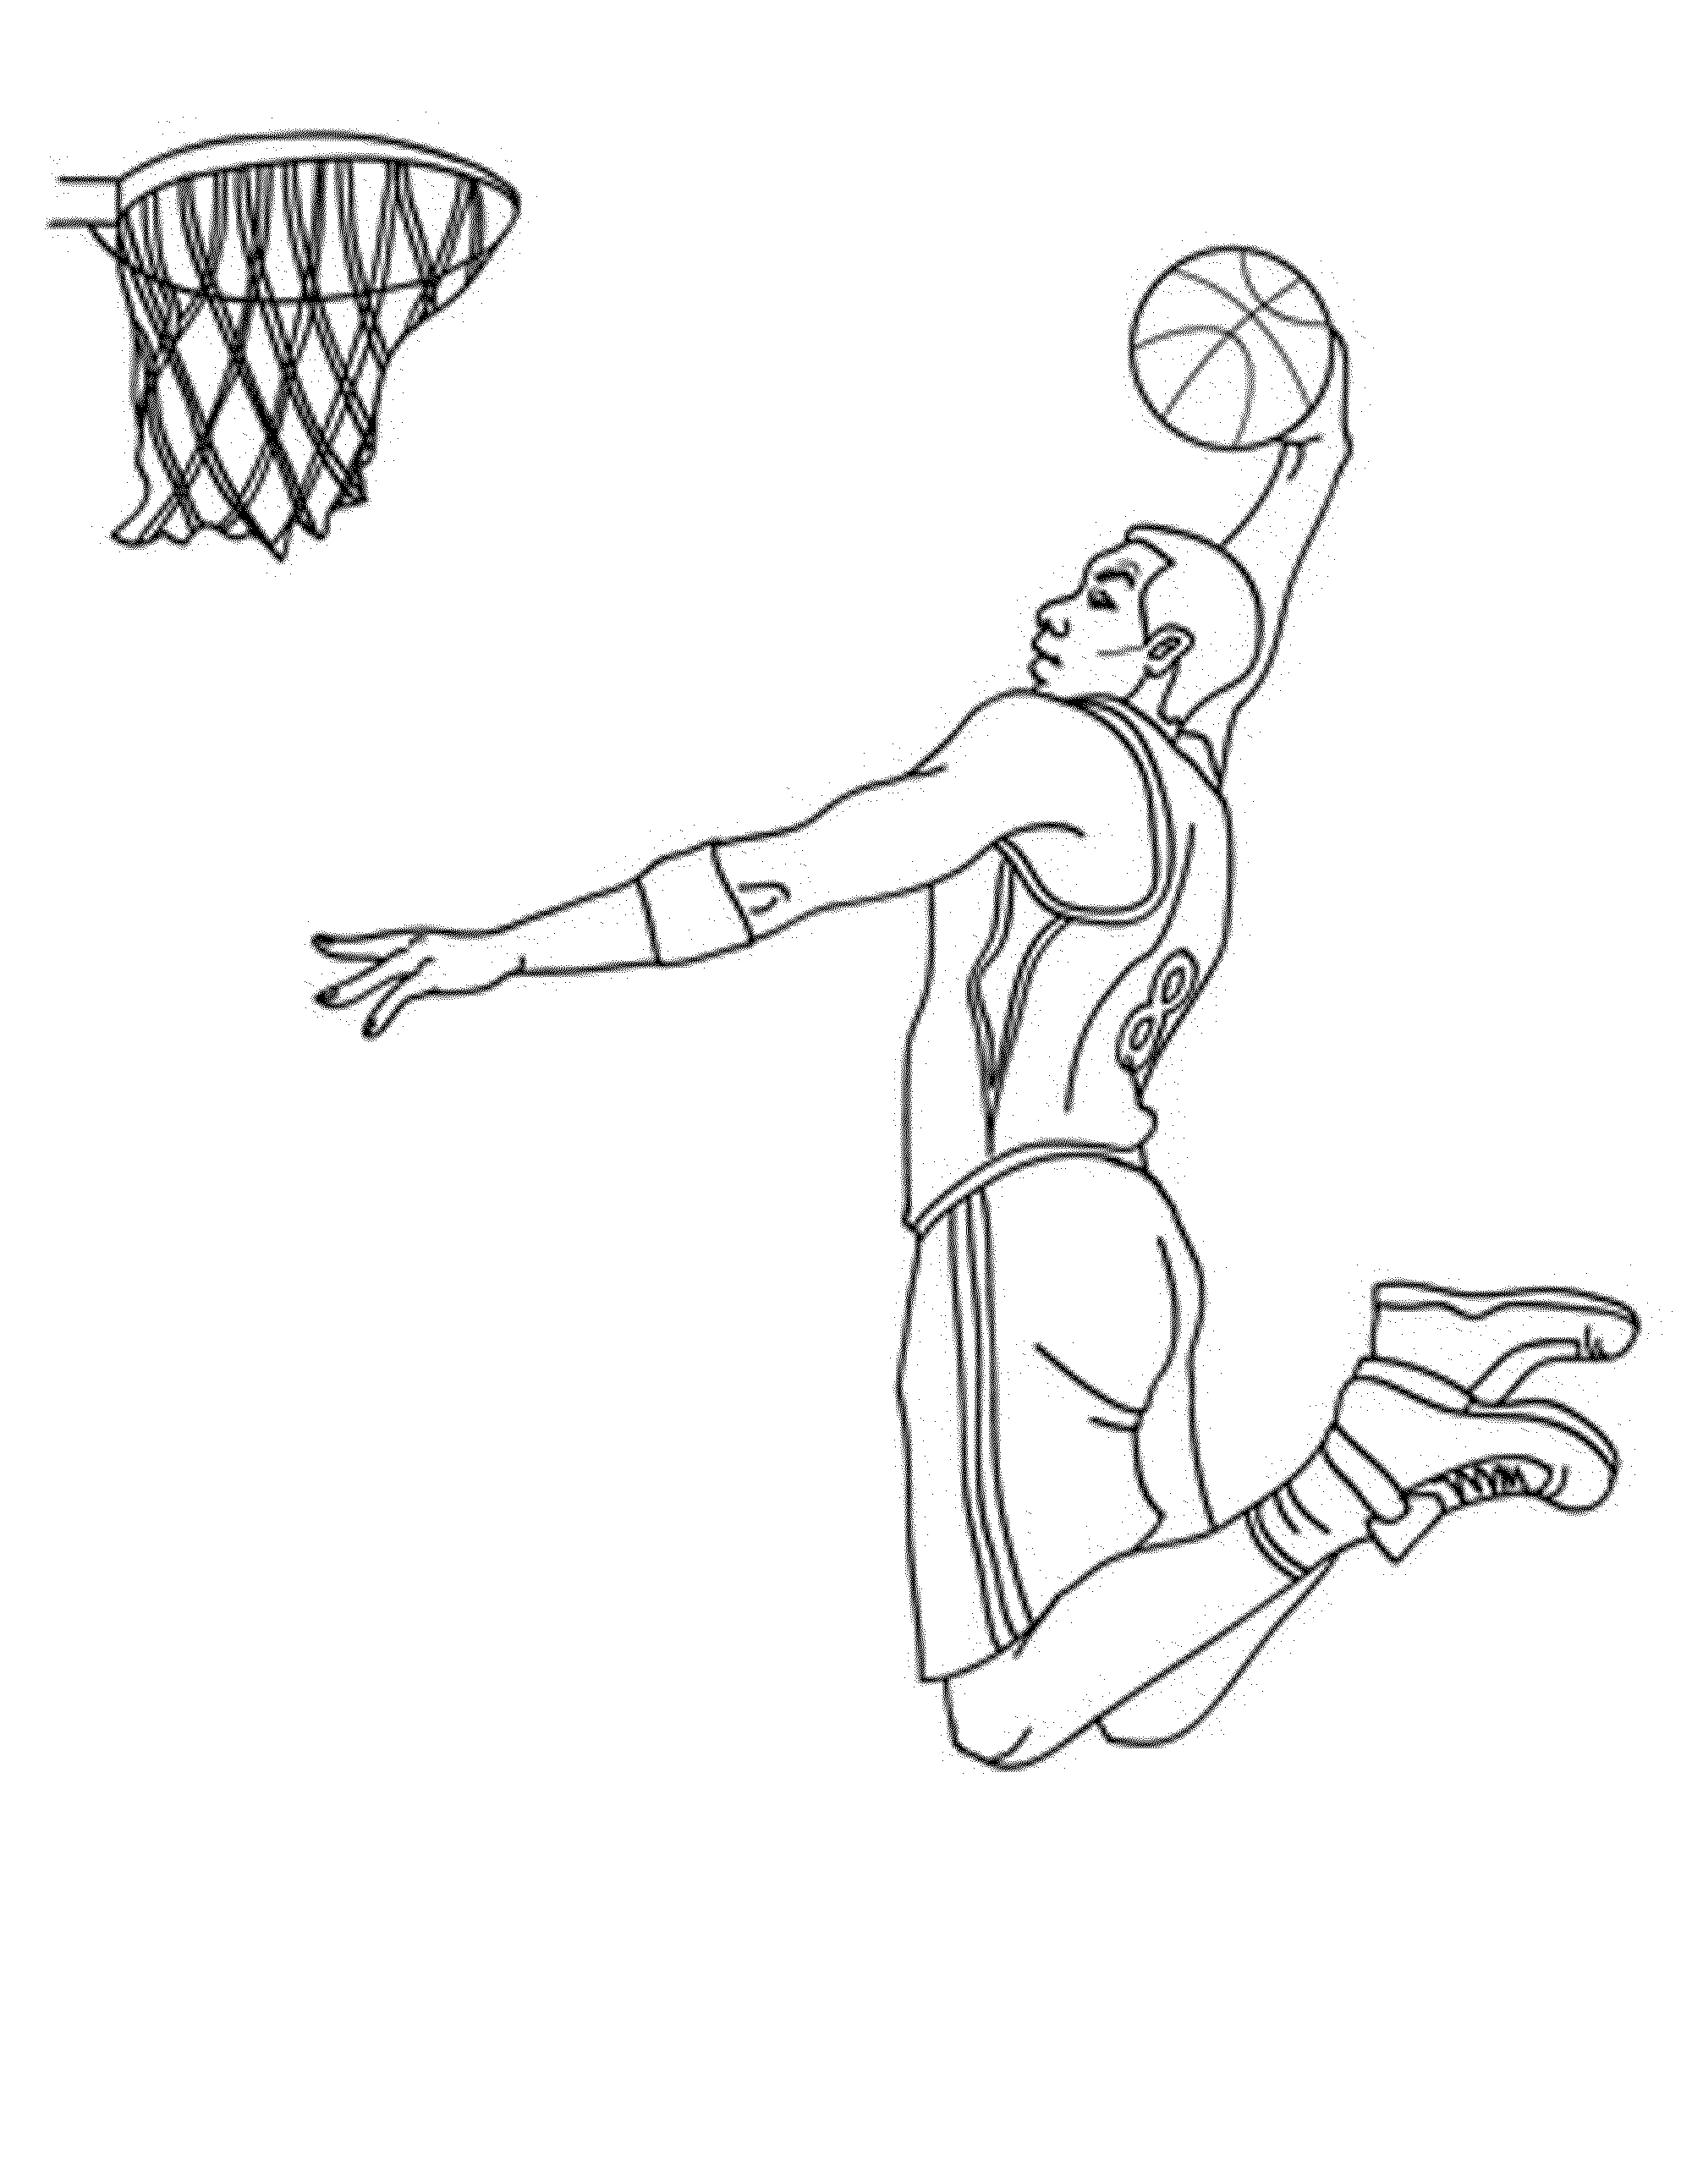 free basketball coloring pages BestAppsForKidscom